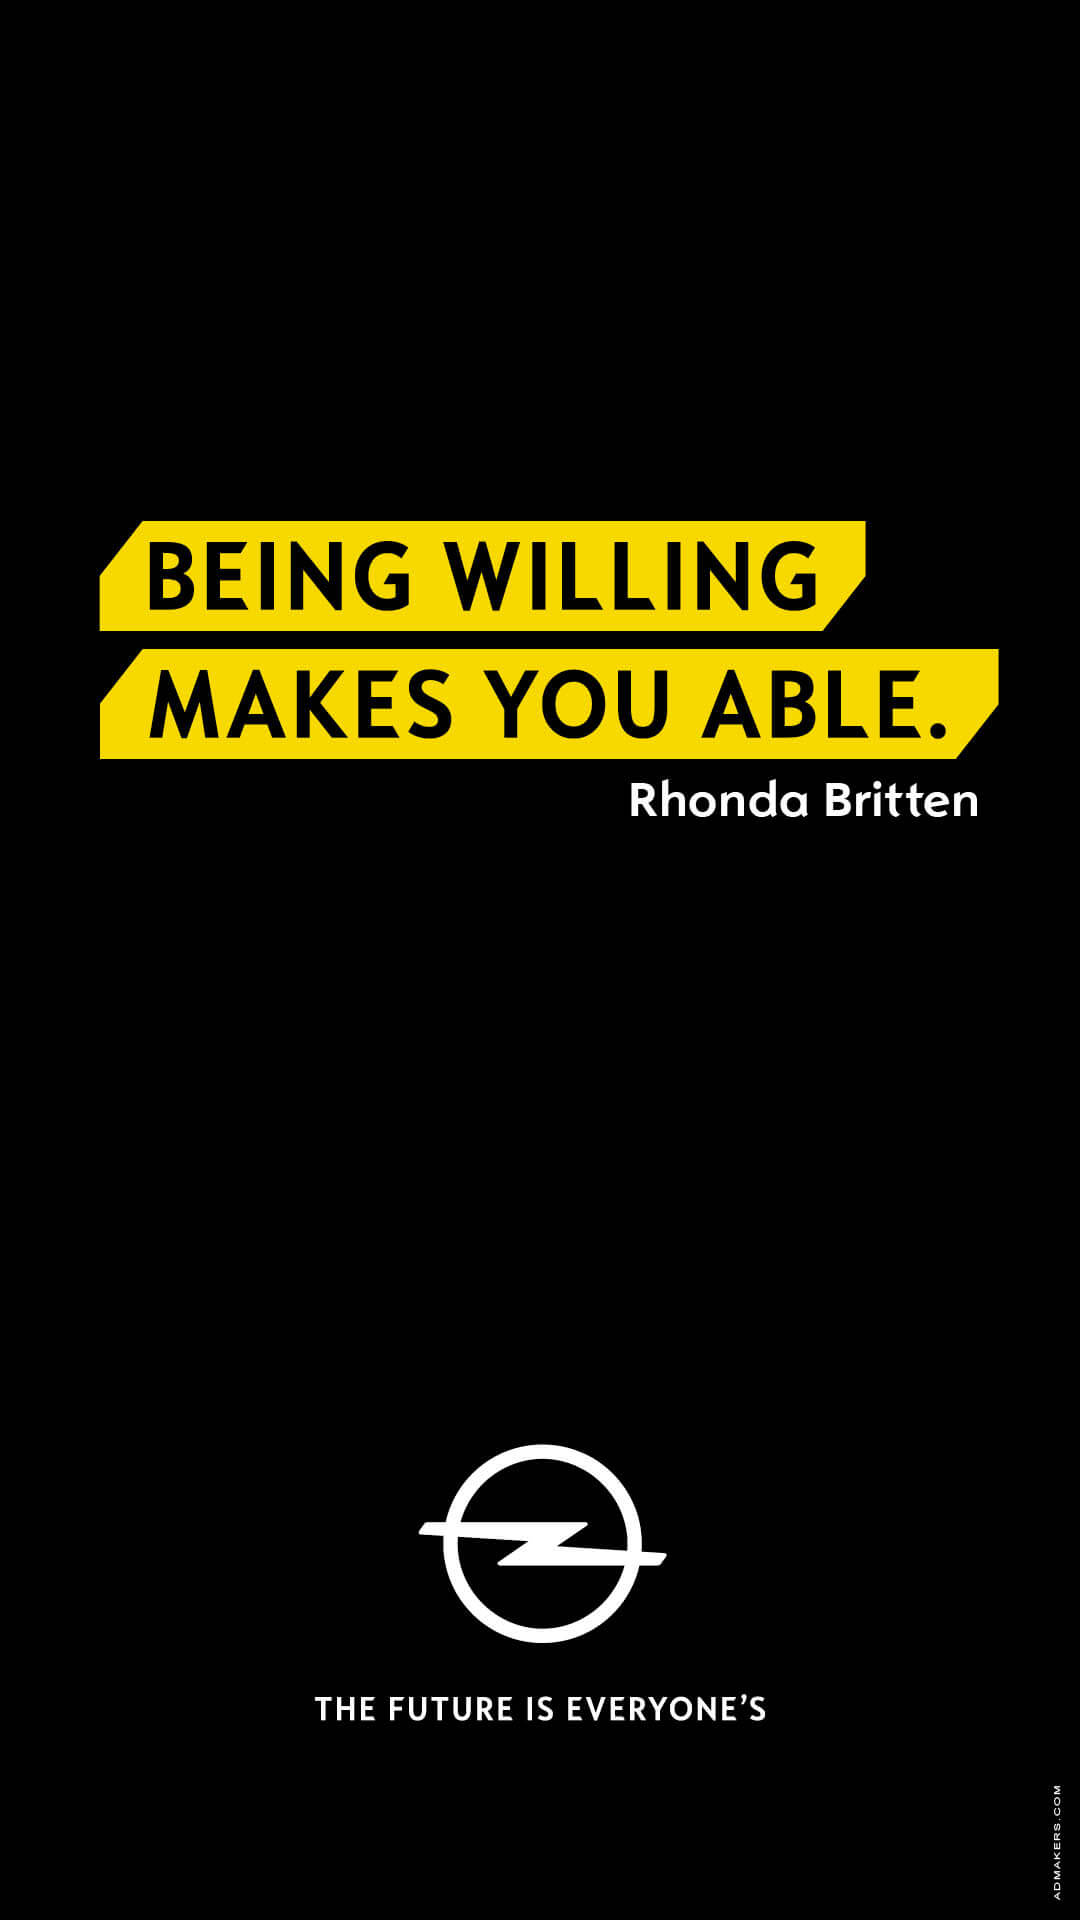 Being willing makes you able.